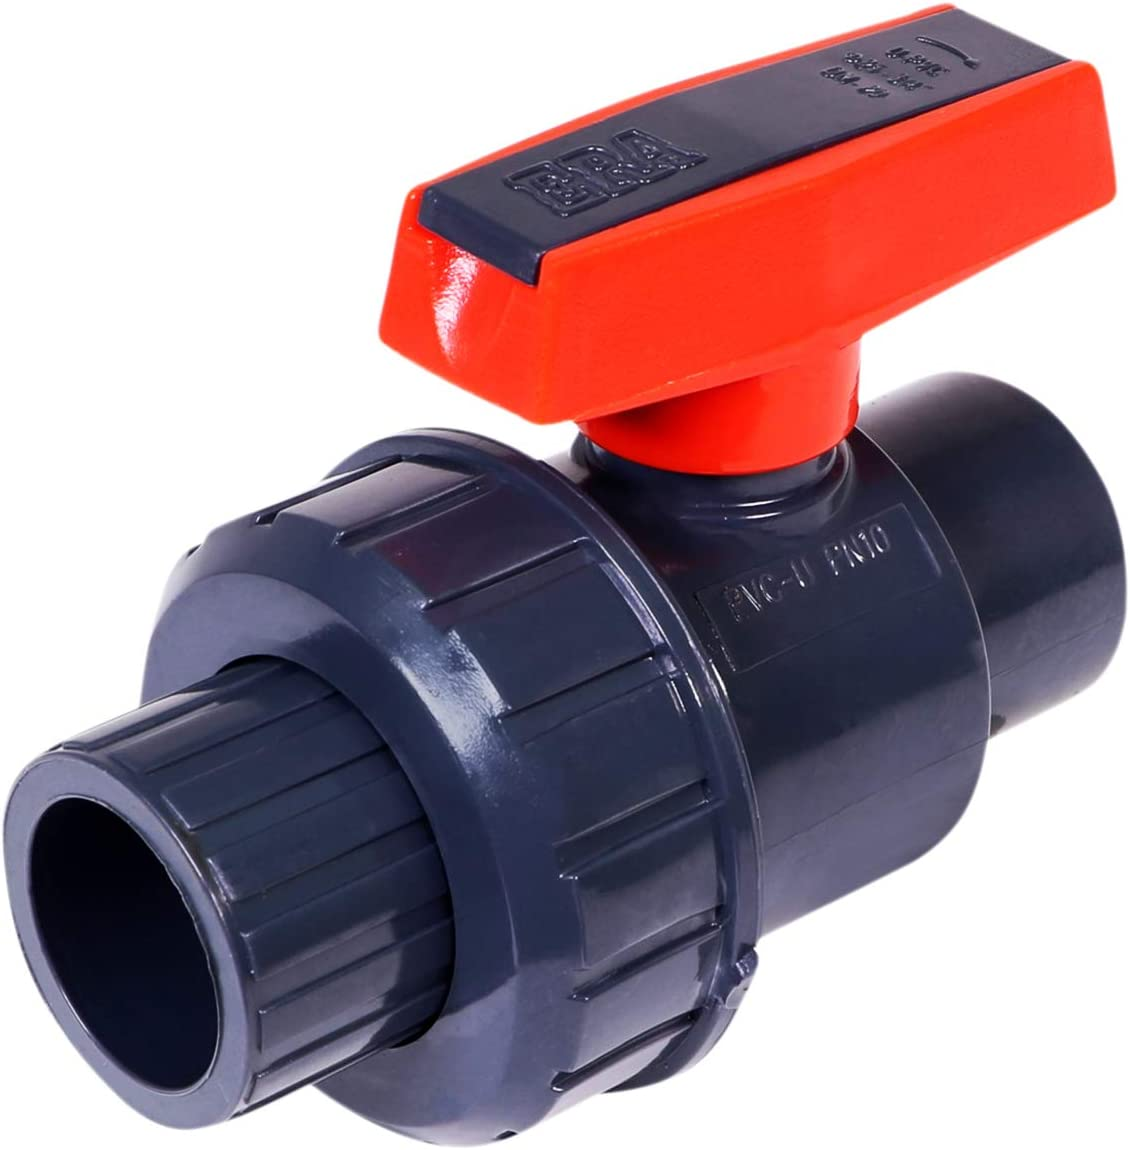 Midline Max 79% OFF Valve Heavy Duty PVC Union Ball Single At the price Pink Handle